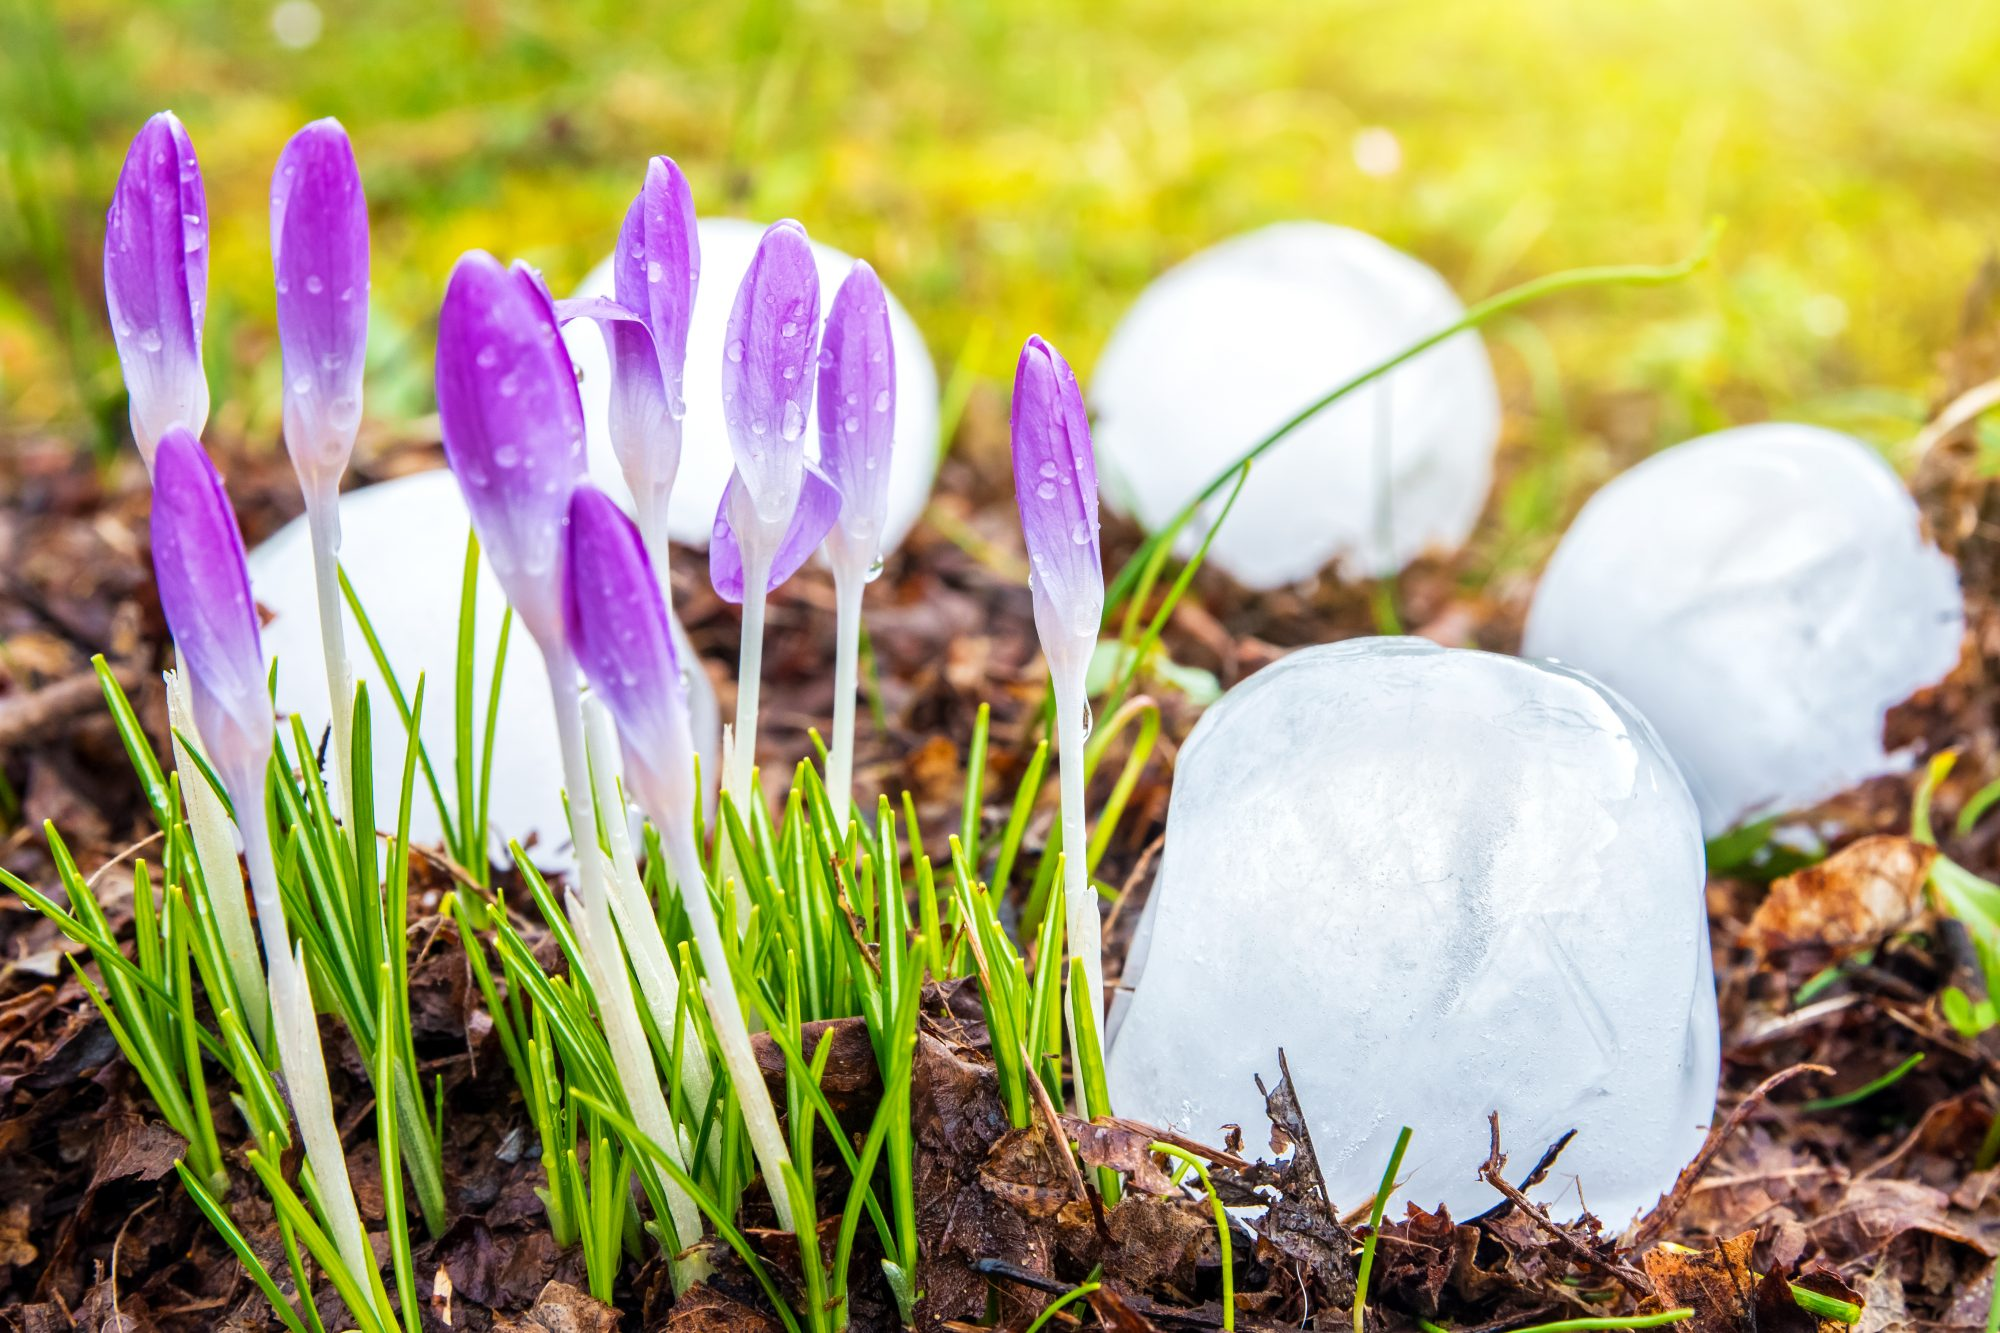 Group close-up of very big ice hailstones fallen from sky during a violent hailstorm in middle of plants and crocus flowers in bud in march end winter season